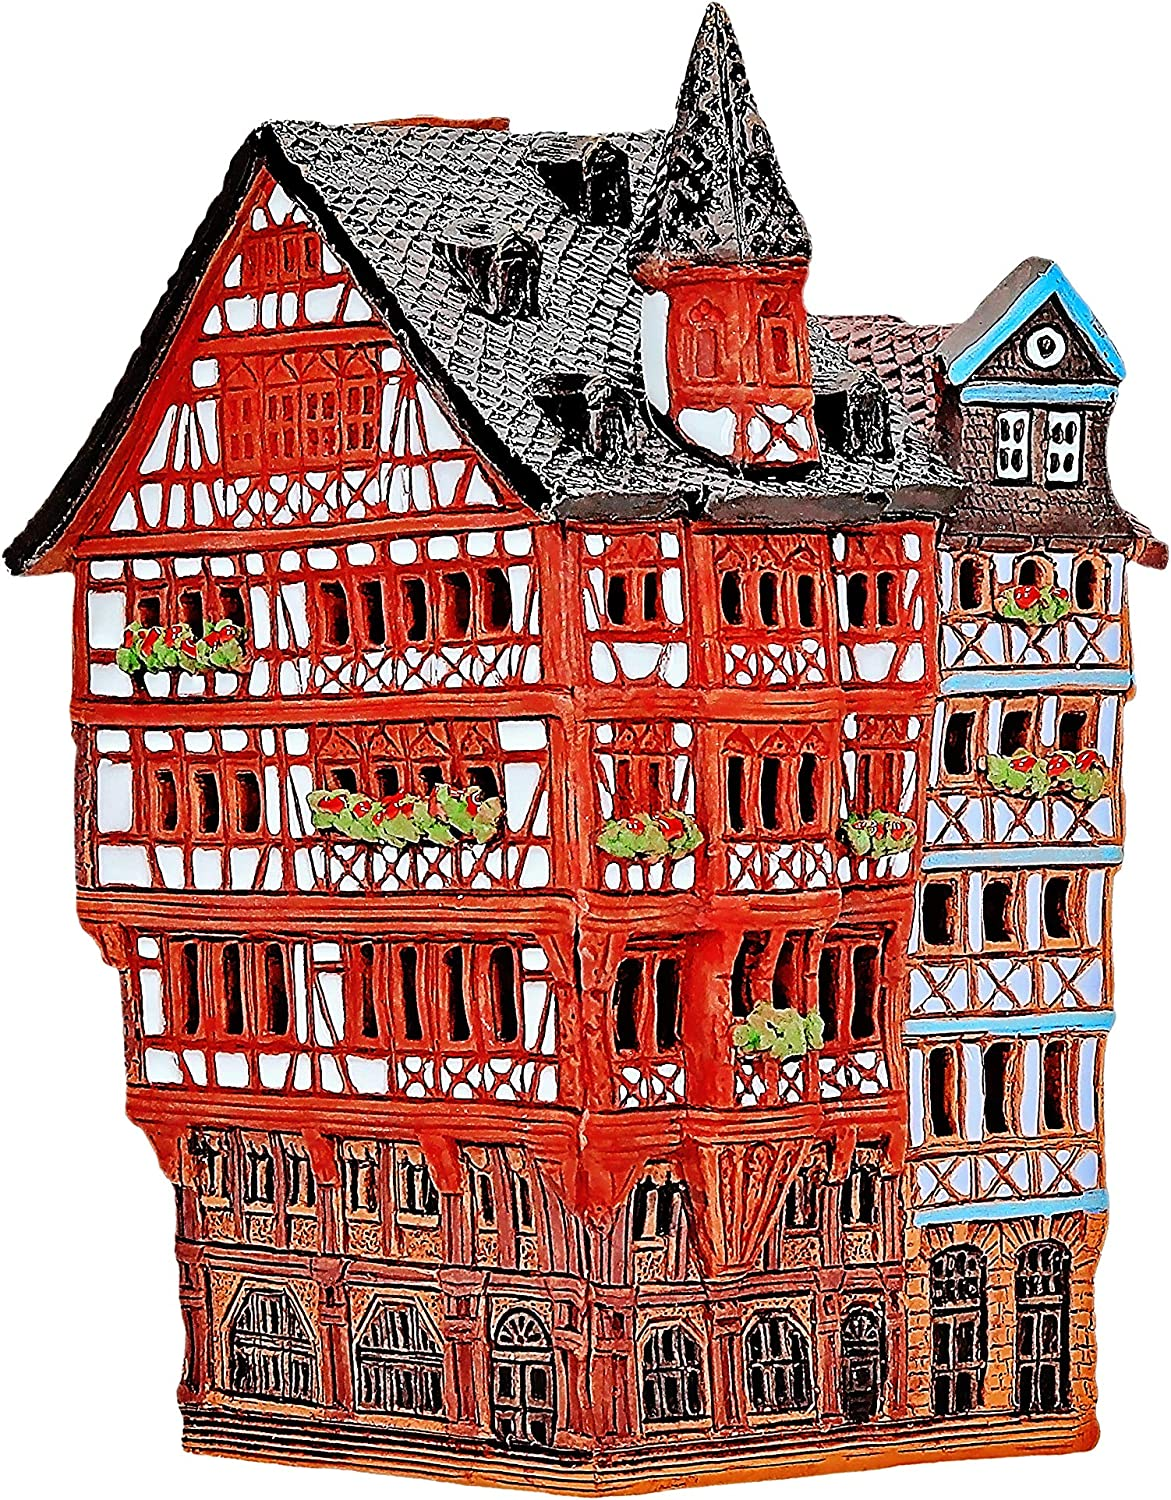 Midene Ceramic Tealight Candle Holder | Room Decoration | Collectible Miniature of The Historic House on Römer Square in Frankfurt | S16-1